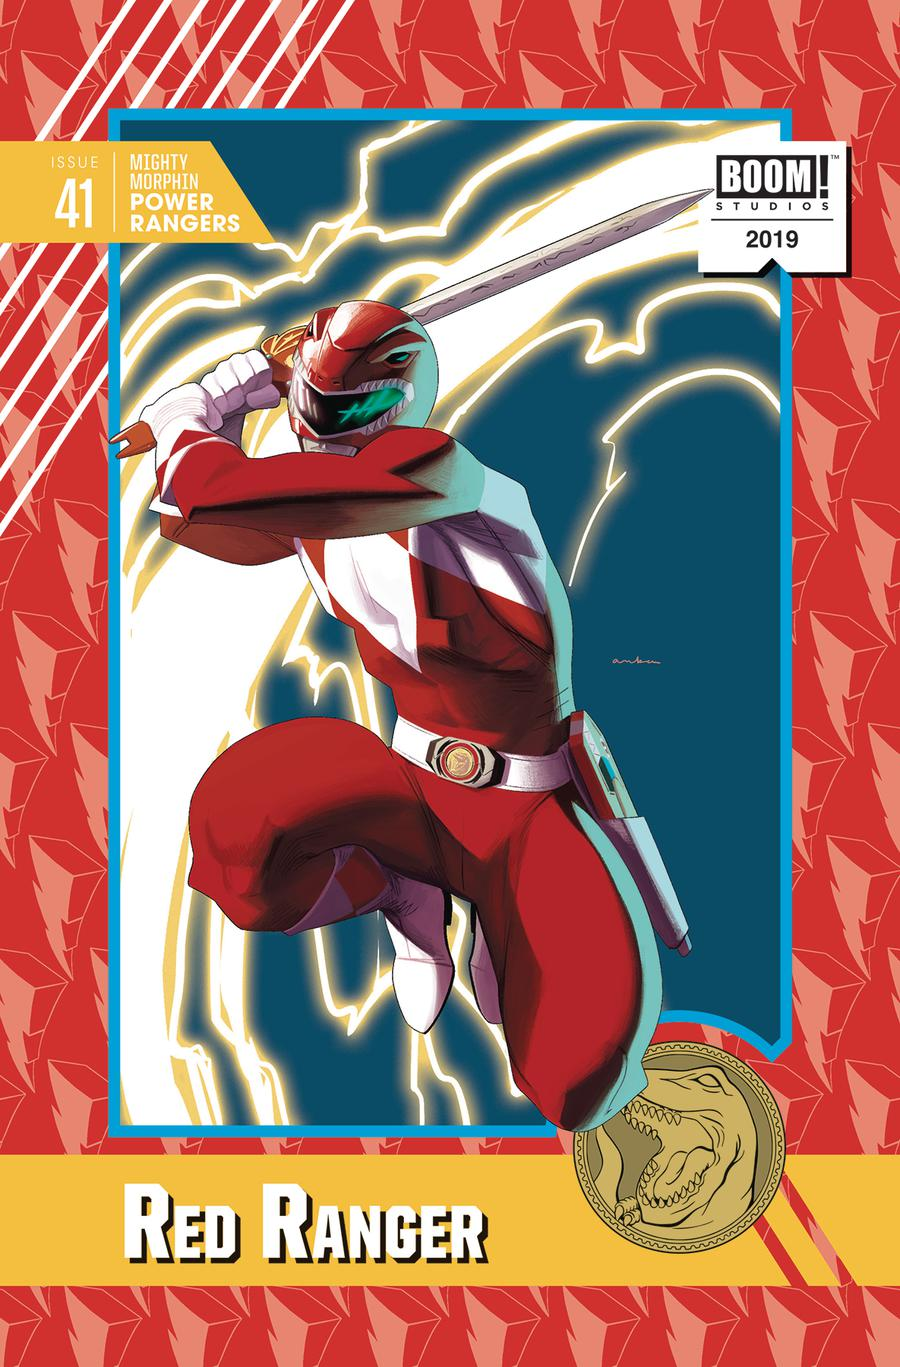 Mighty Morphin Power Rangers (BOOM Studios) #41 Cover D Incentive Kris Anka Variant Cover